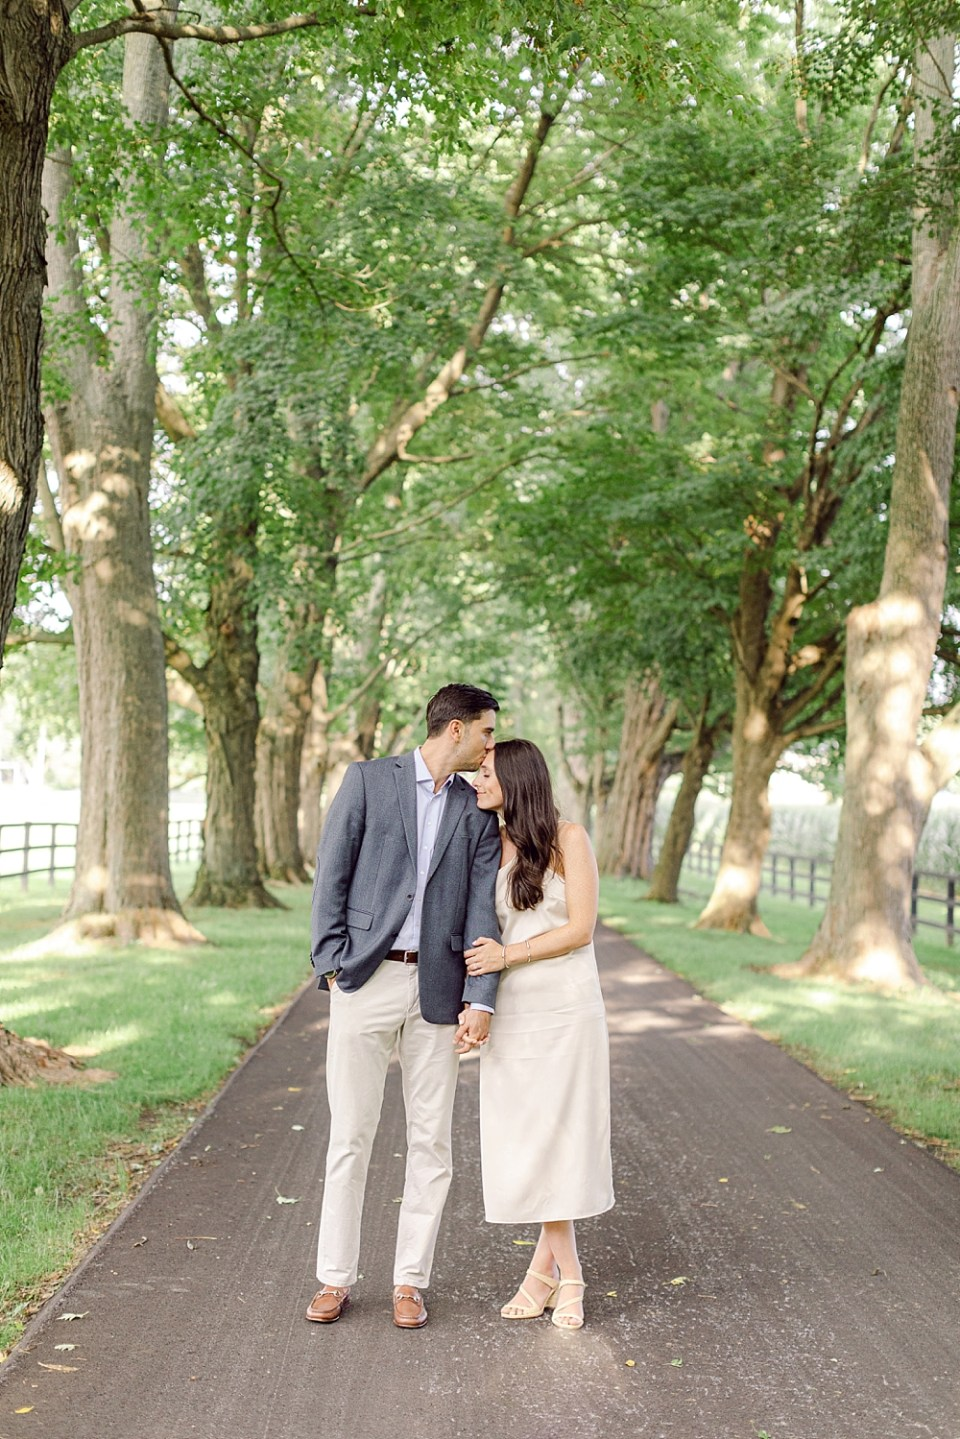 pennsylvania wedding photographer sarah canning | beechdale farms engagement